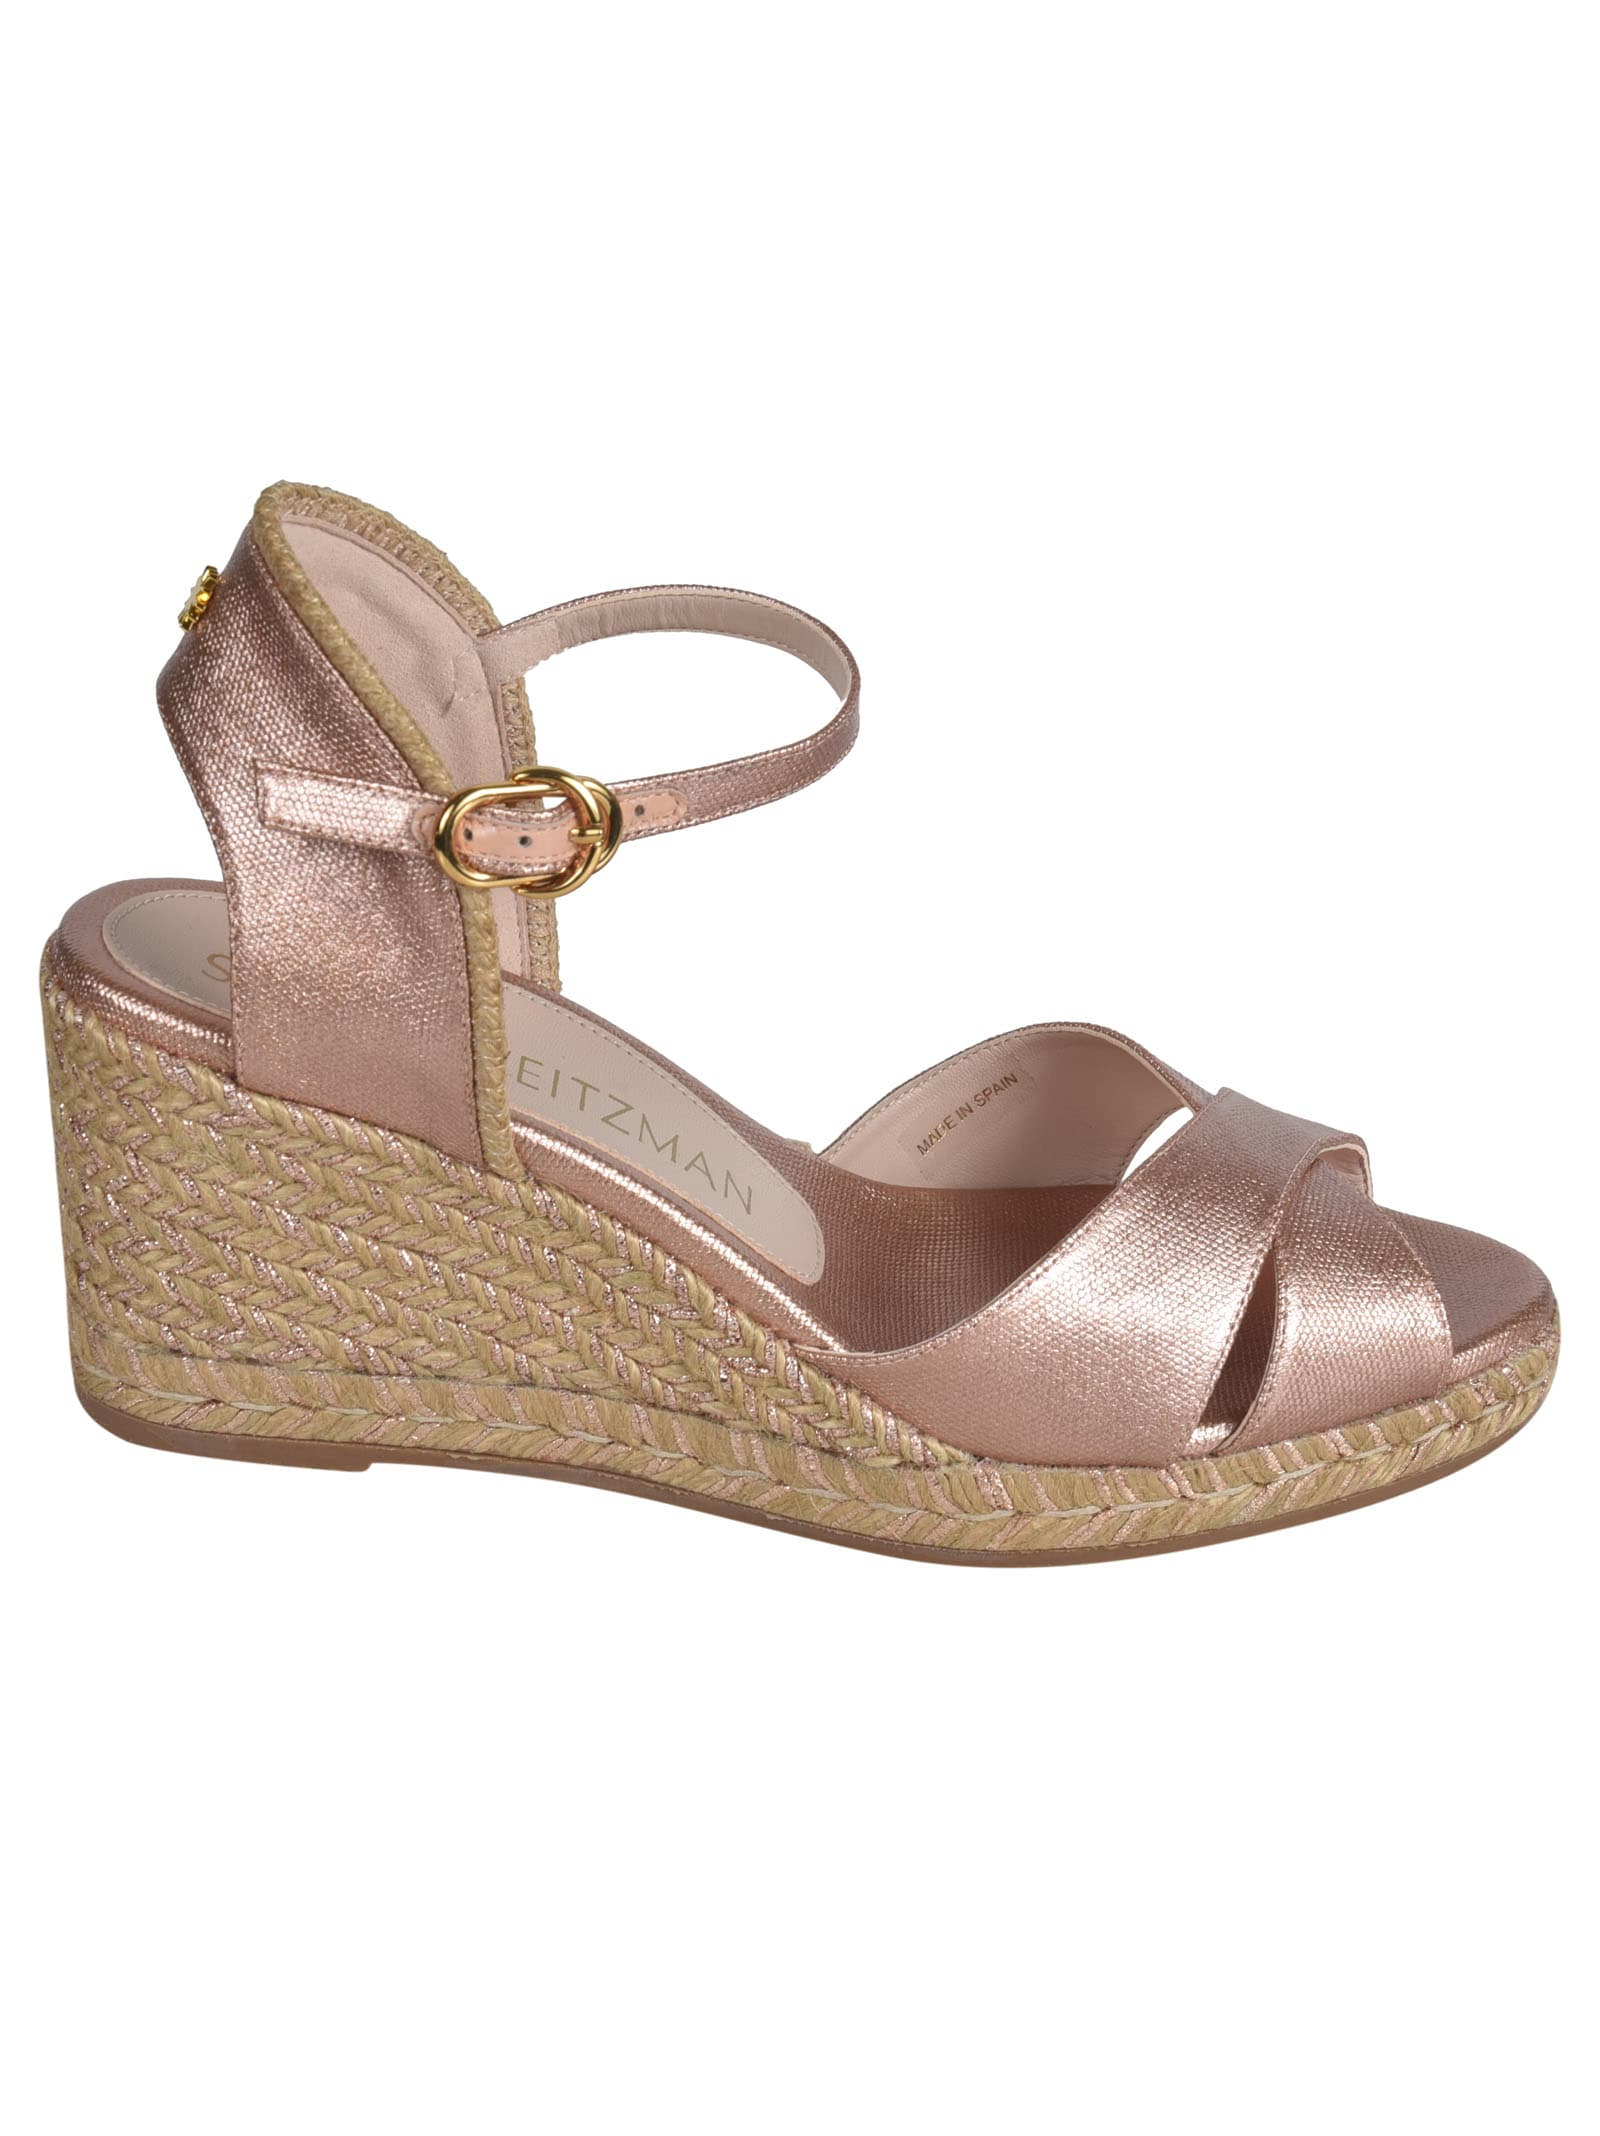 Stuart Weitzman Wedges MIRELA WEDGE SANDALS